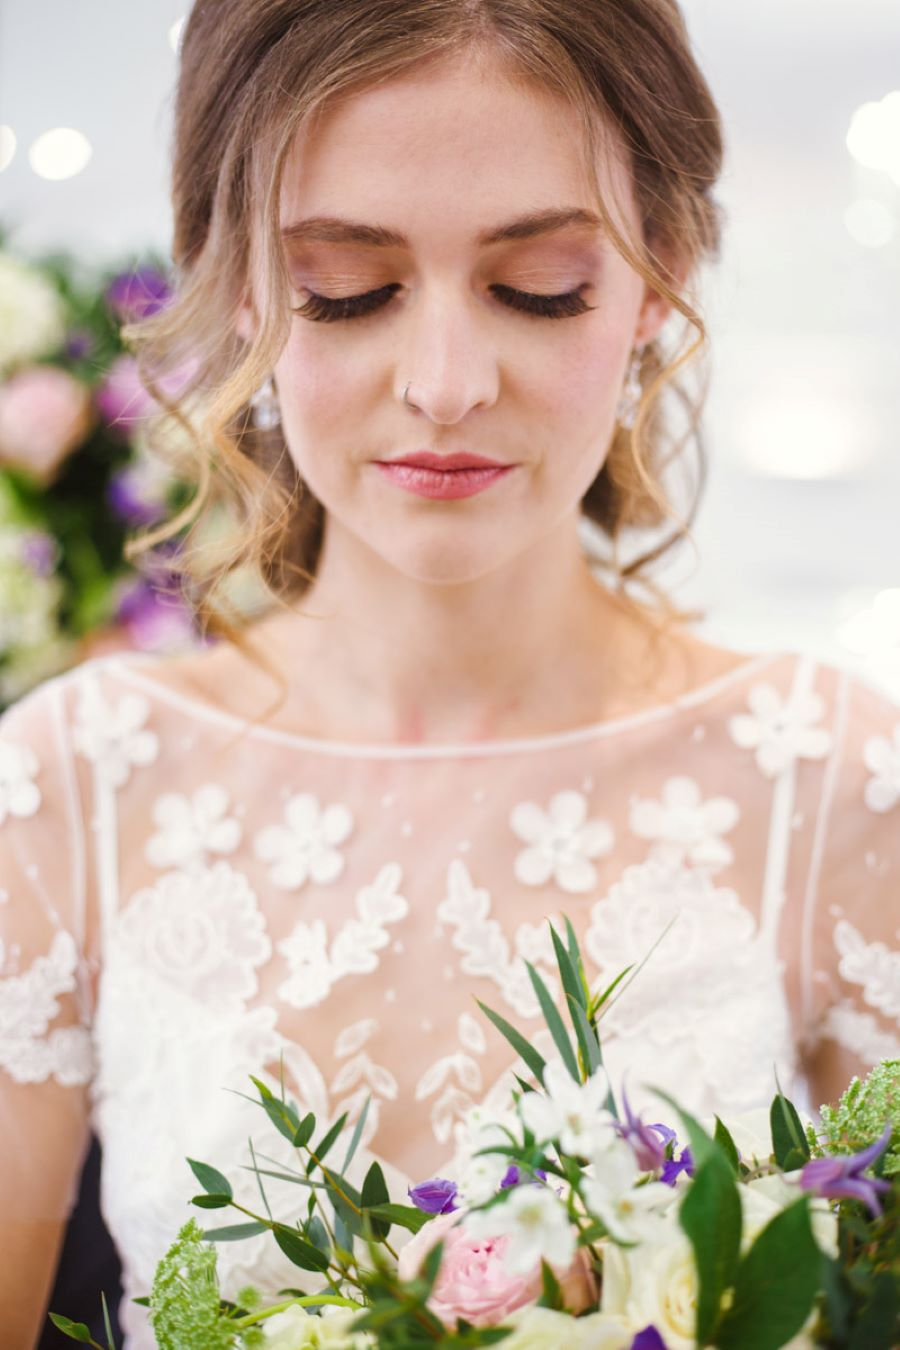 Light and romance with natural blush tones - wedding ideas from Downham Hall. Photographer credit Magical Moments Photography (17)